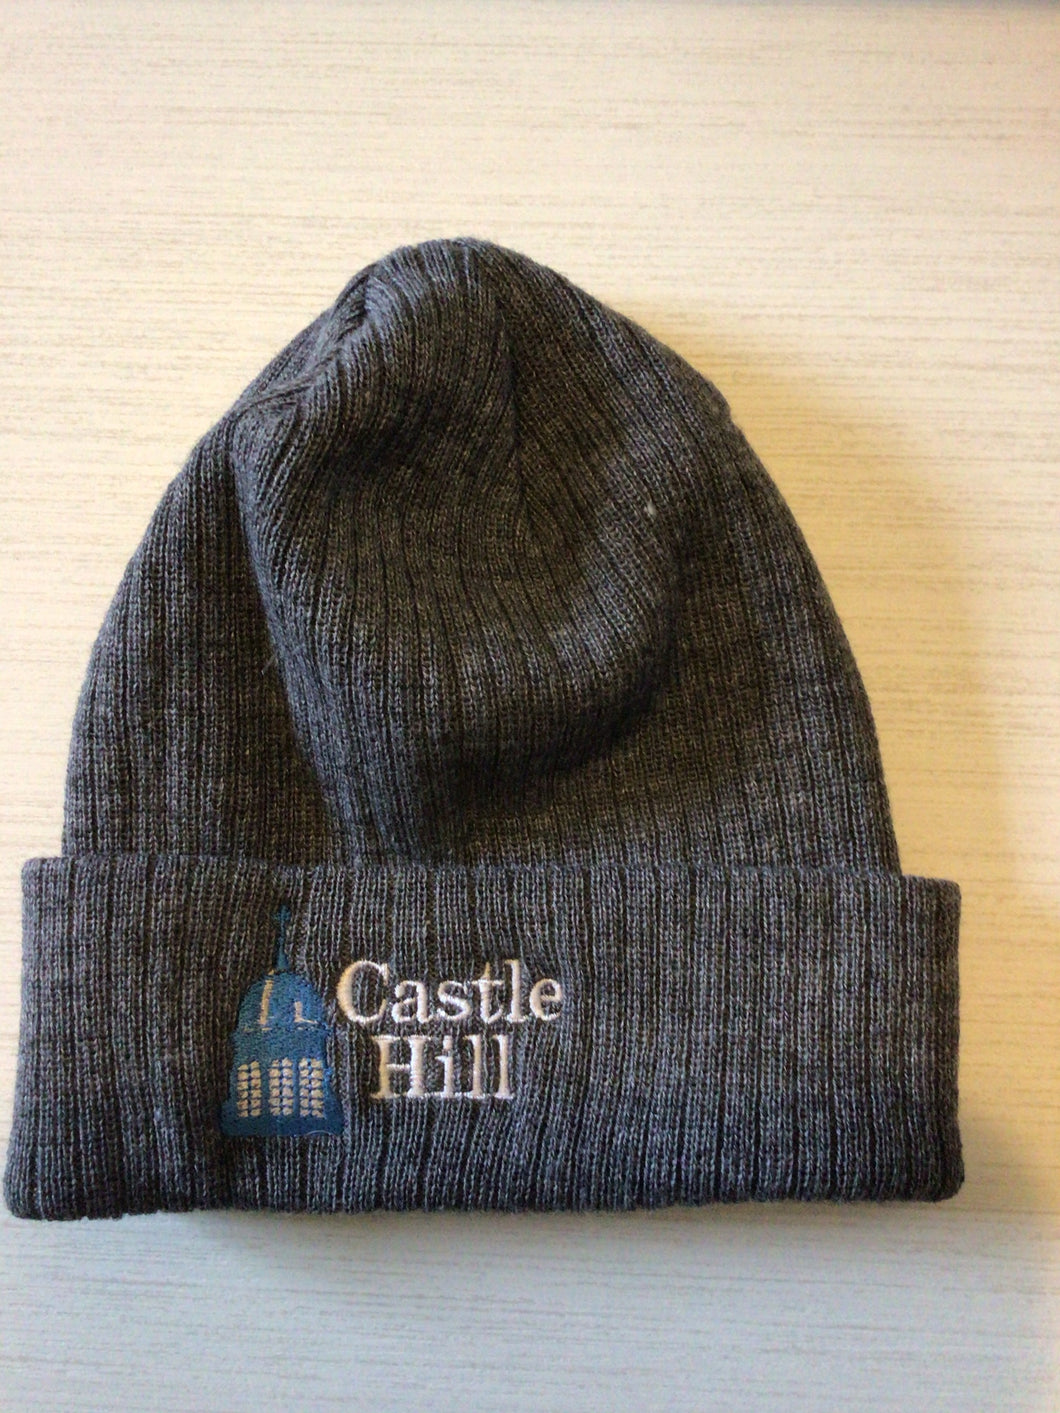 Castle Hill Winter Hat